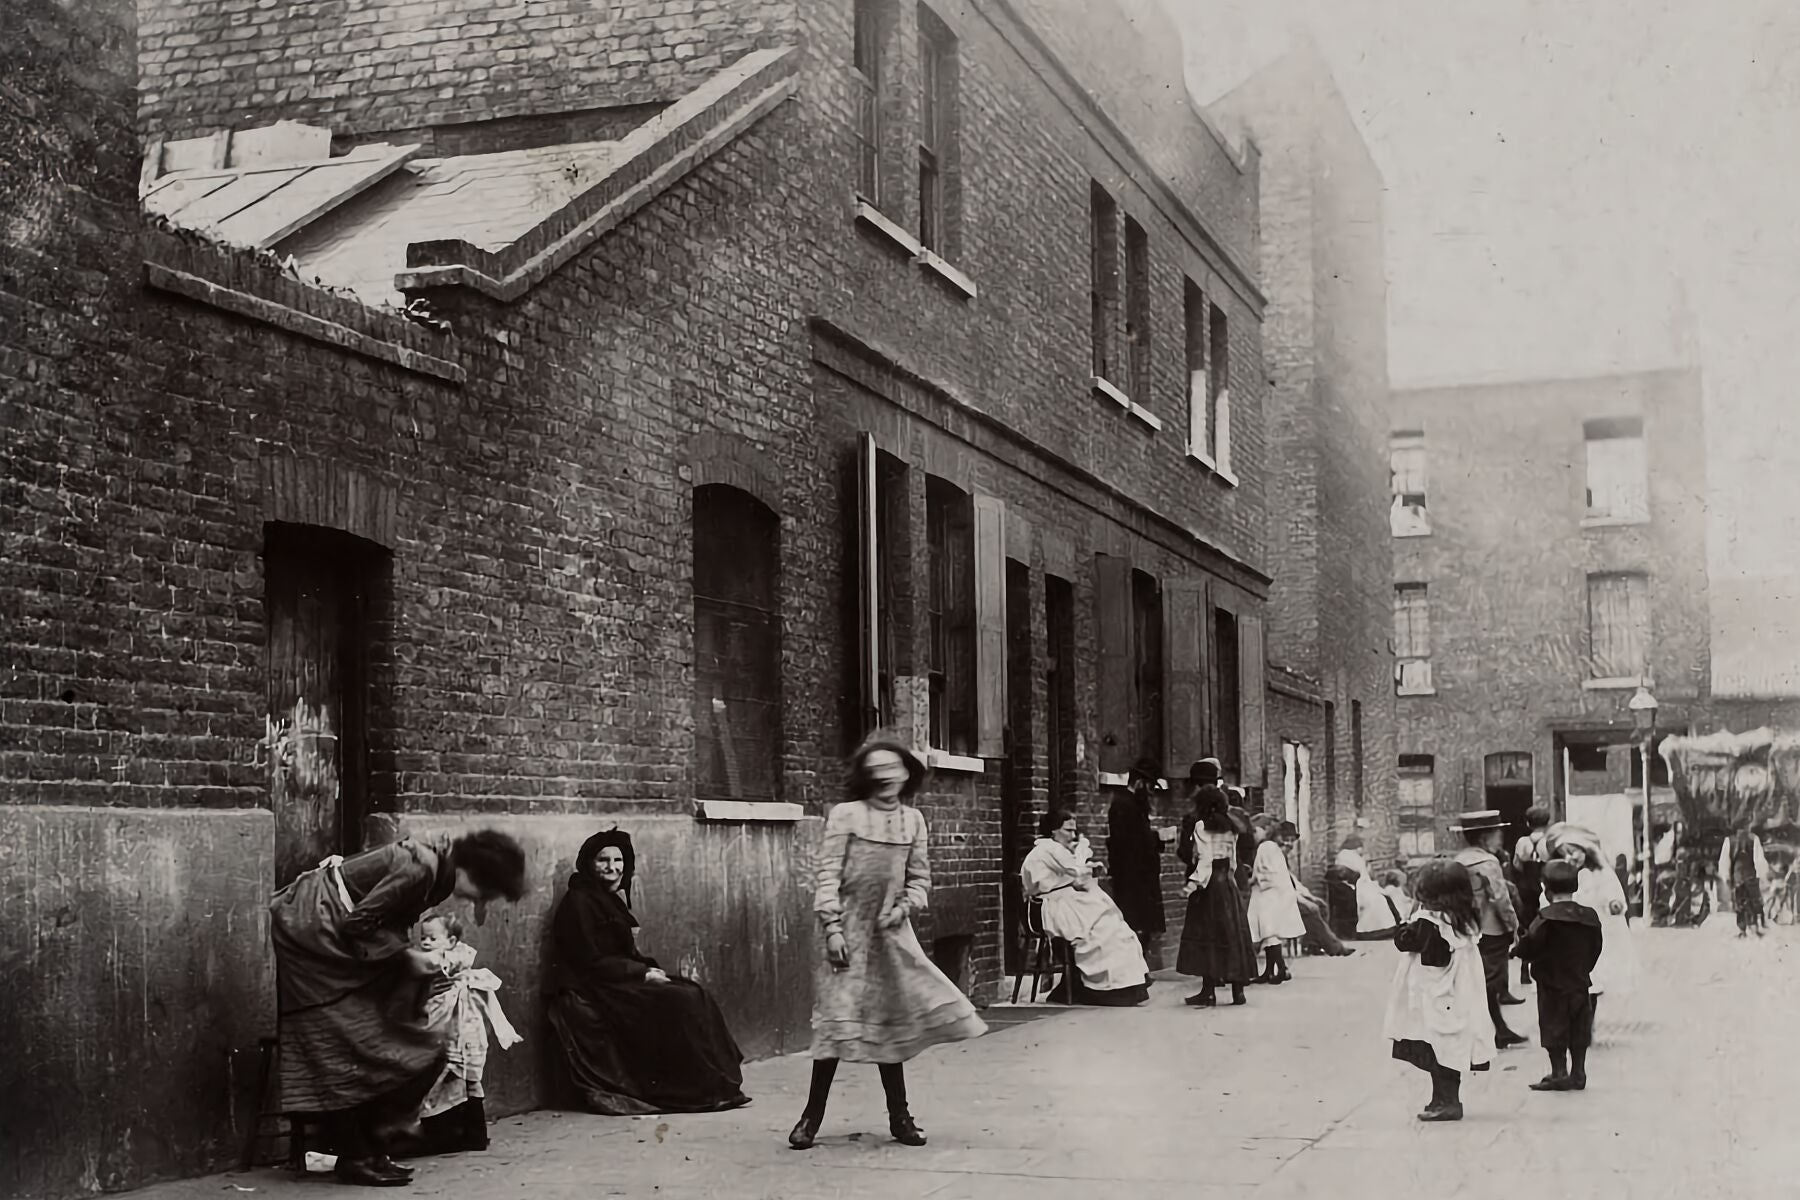 Bank Holiday in Whitechapel , London - by Jack London - 1902